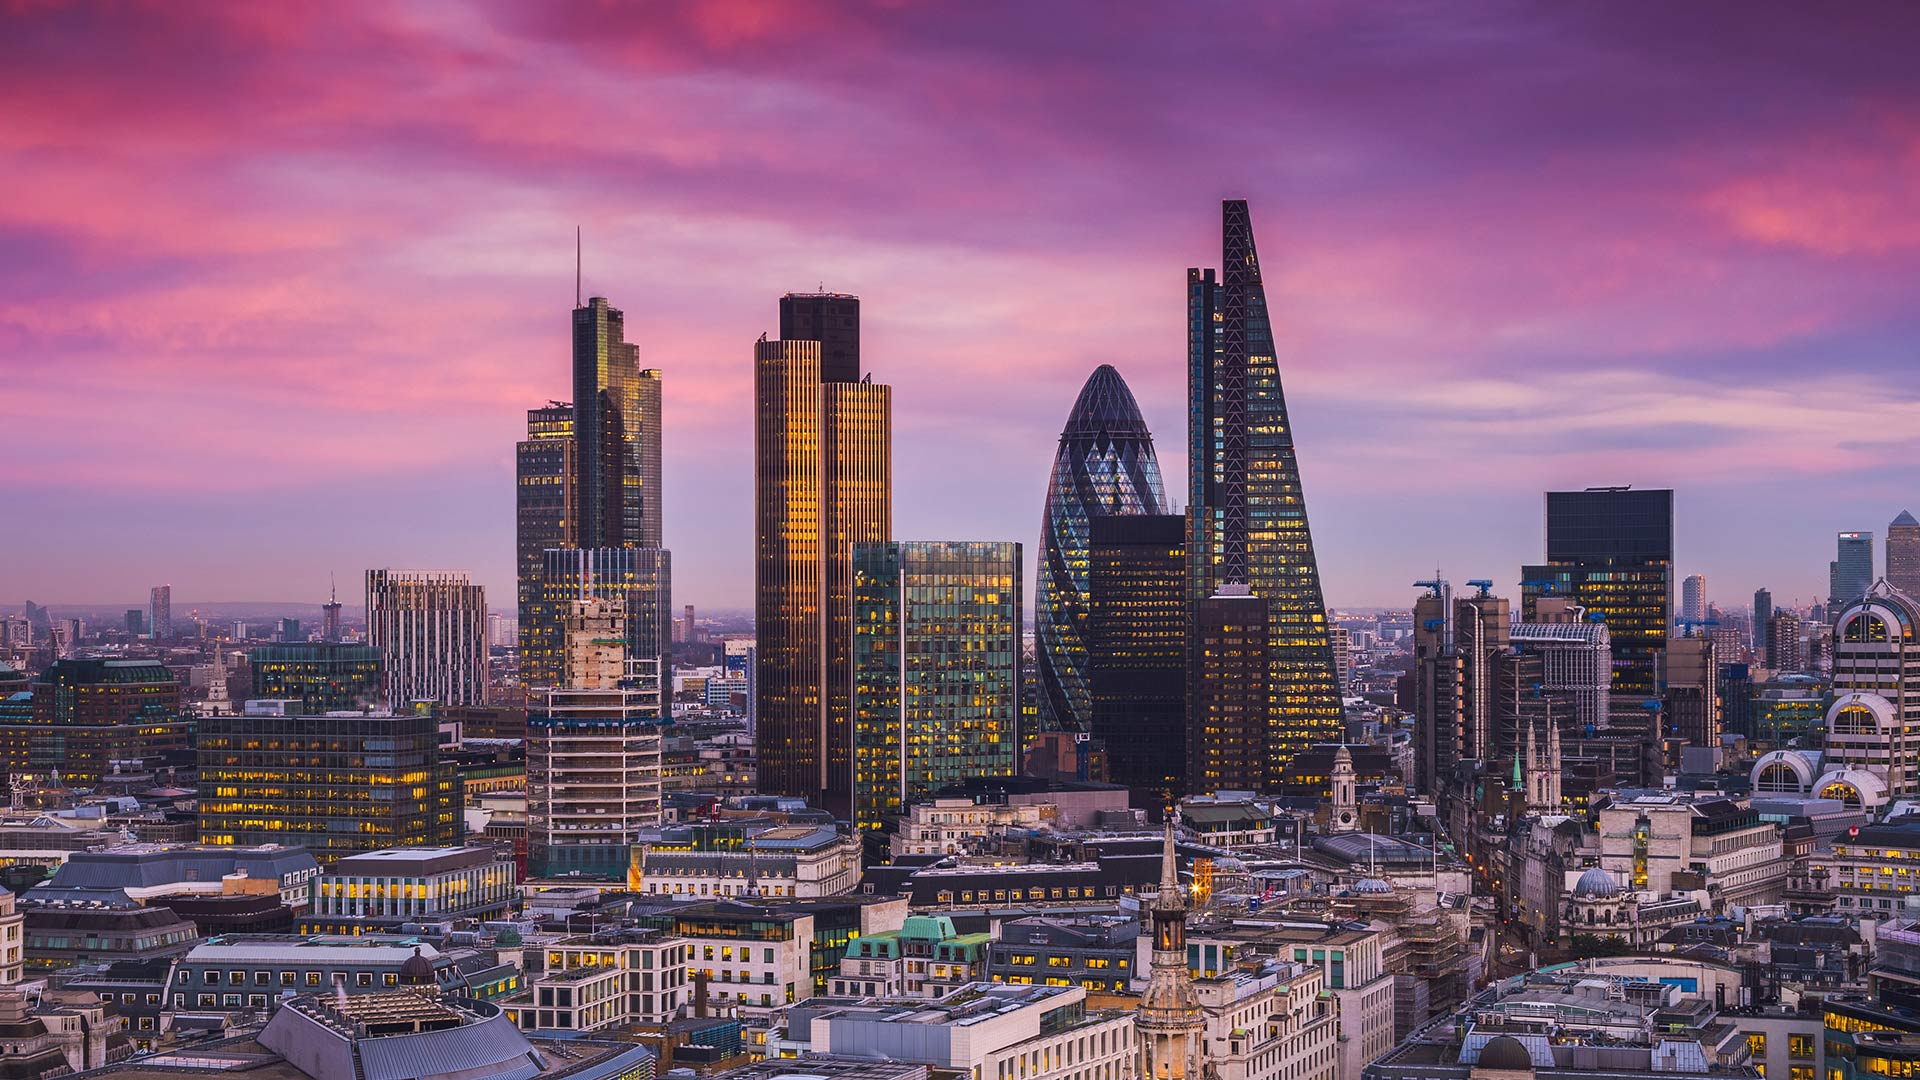 The Corporate Insolvency and Governance Act 2020 (CIGA)